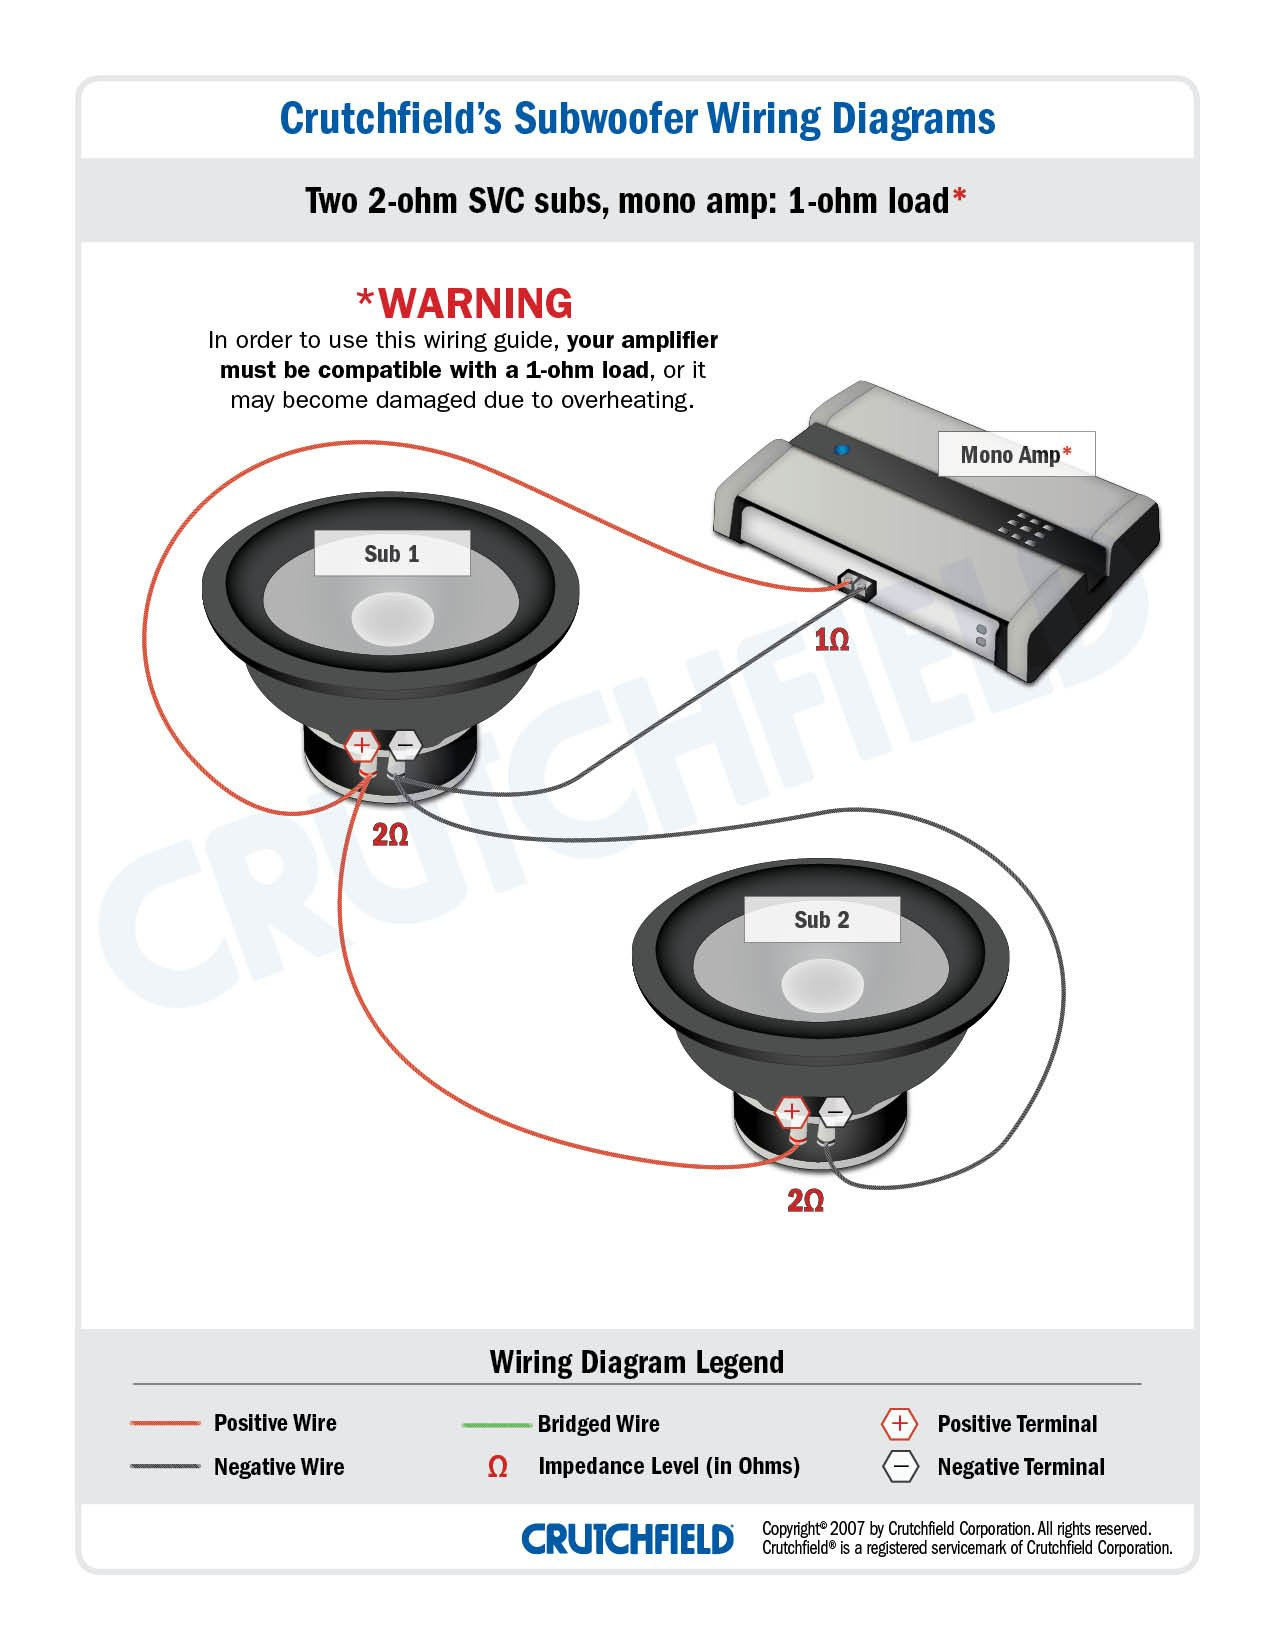 2 SVC 2 ohm mono low imp subwoofer wiring diagrams bose spare tire subwoofer wiring diagram at gsmx.co